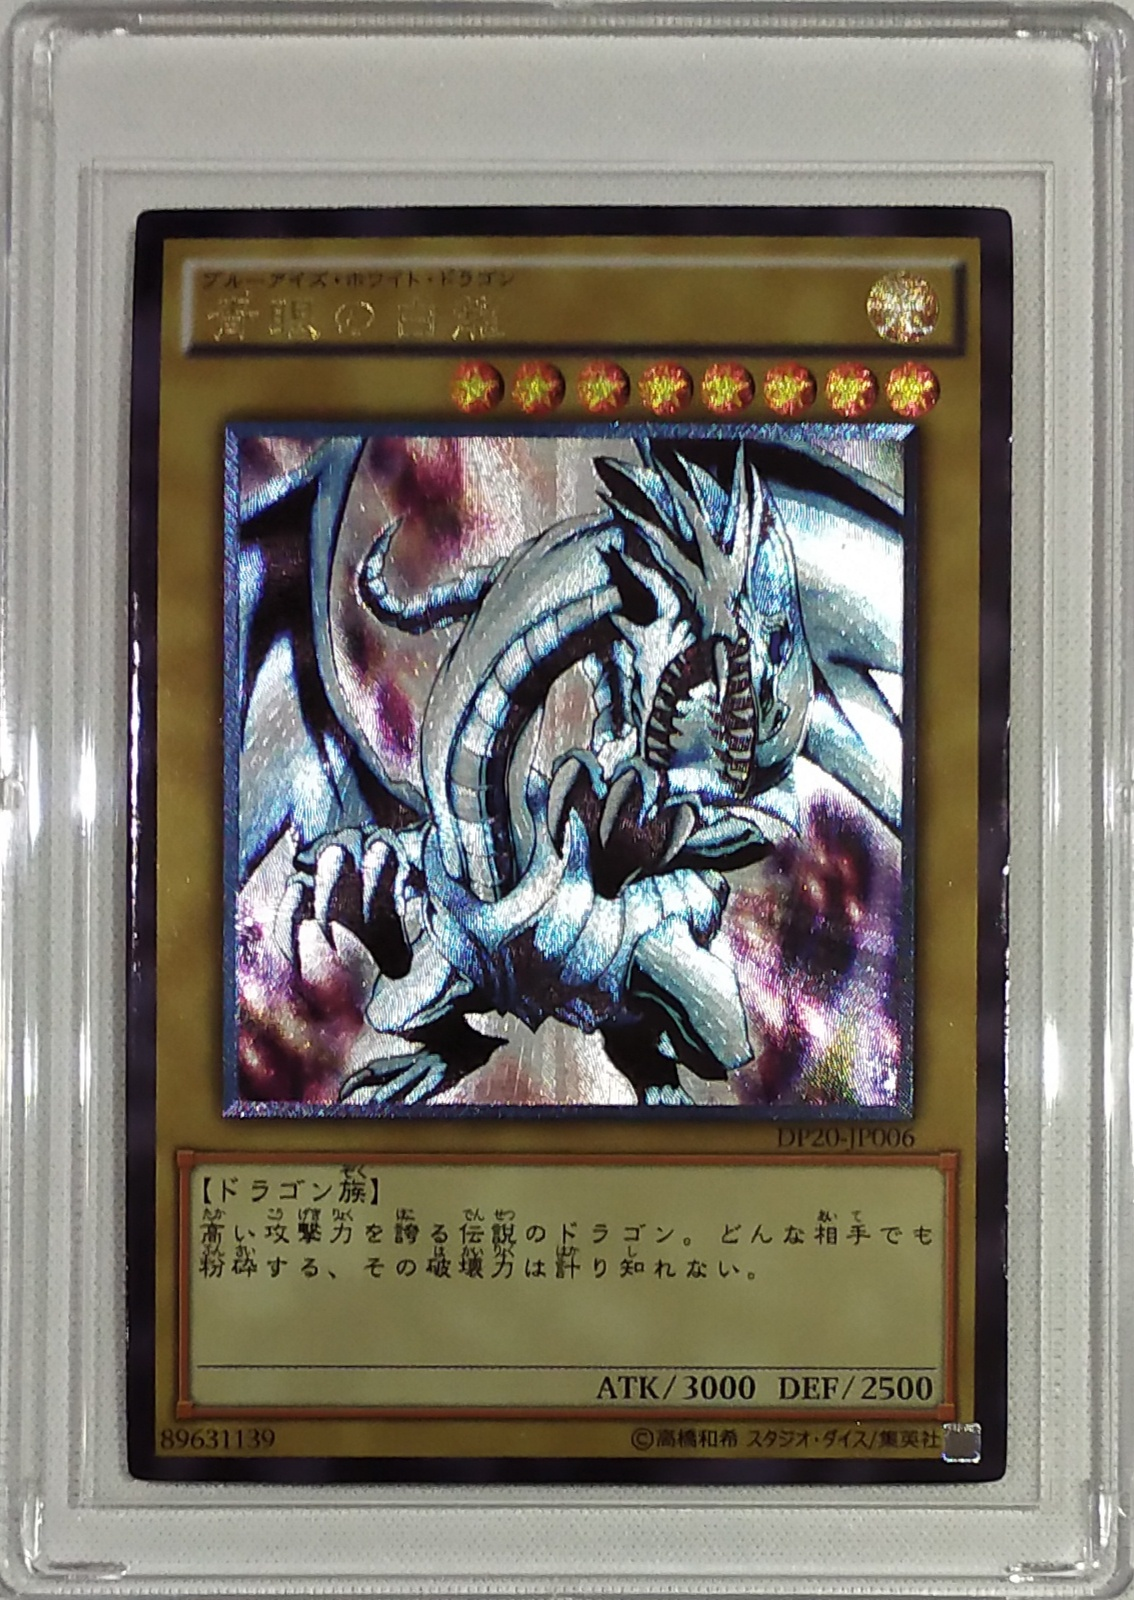 Yu Gi Oh DIY Colorful Toys Hobbies Hobby Collectibles Game Collection Anime Cards